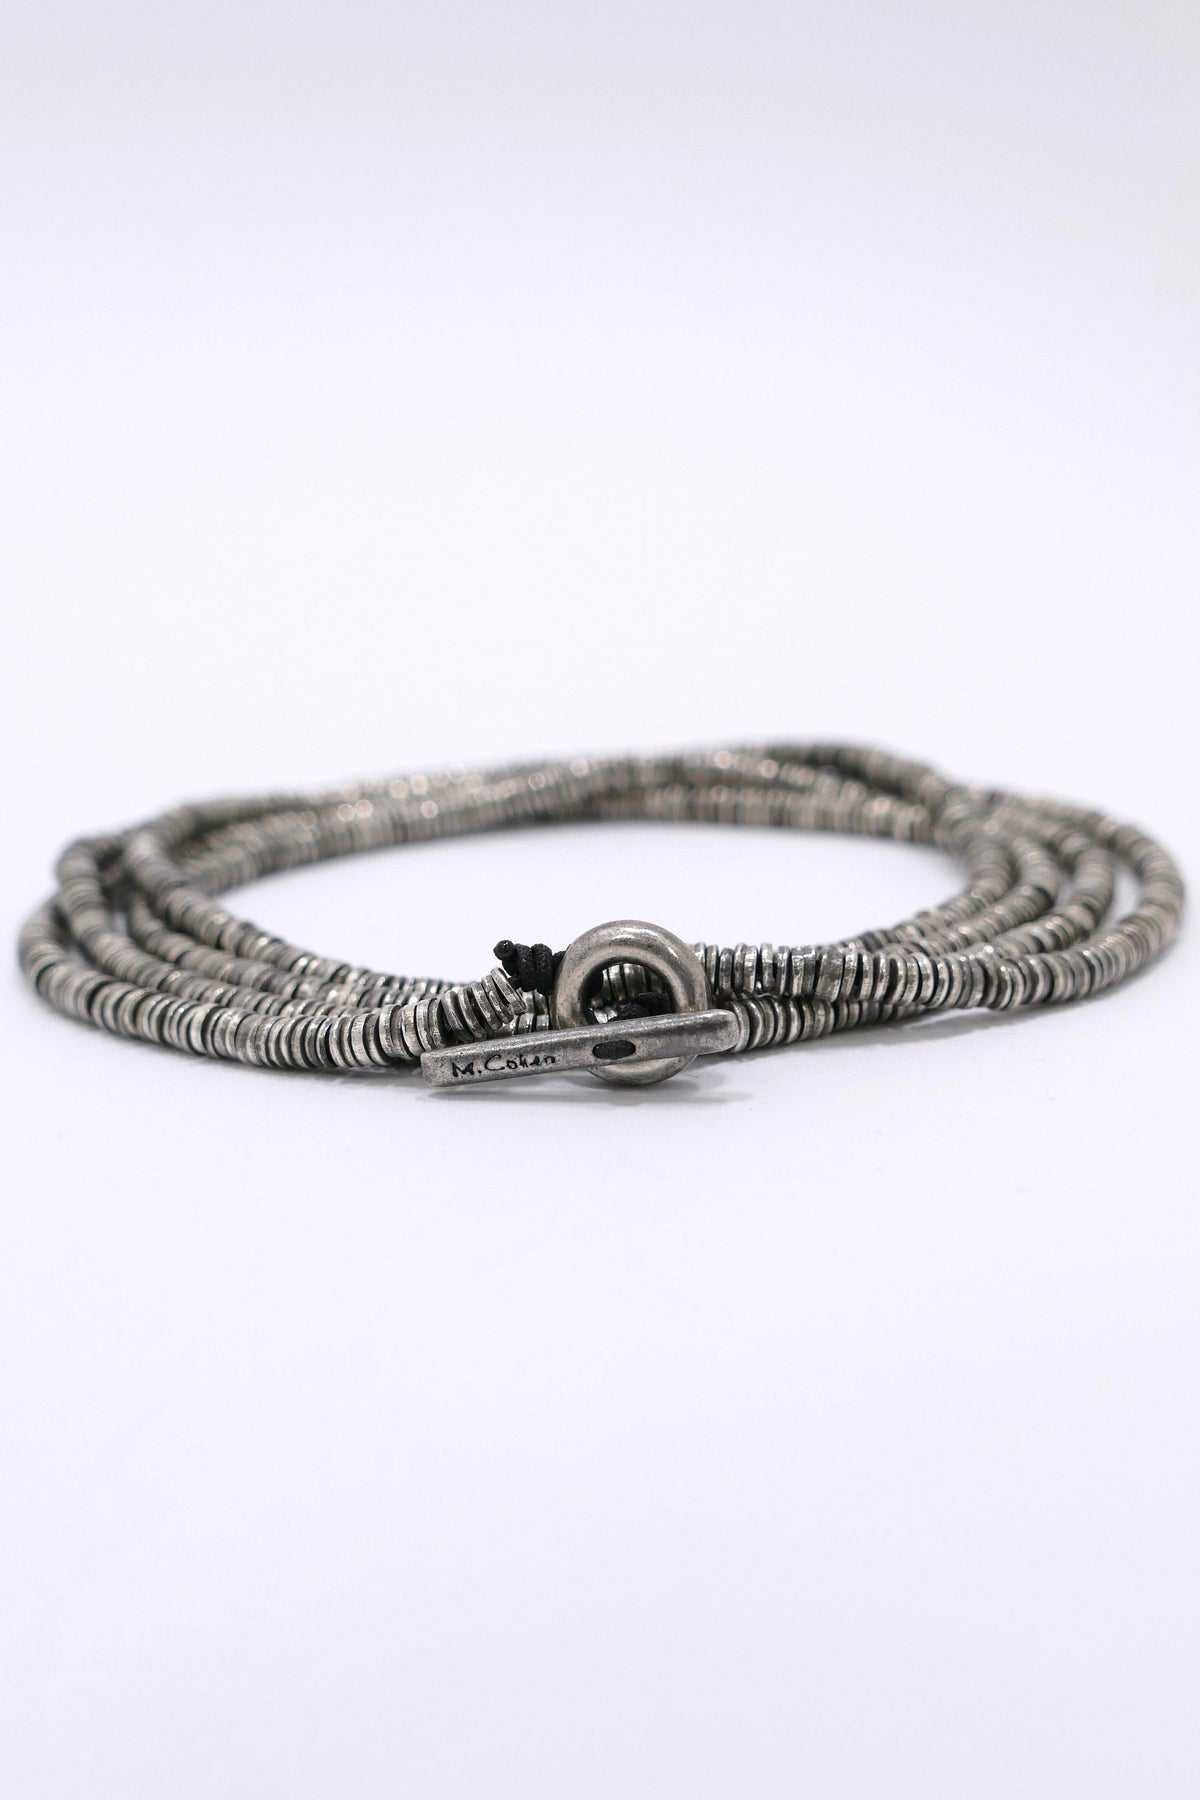 M.Cohen 4 Wrap Bracelet/Necklace